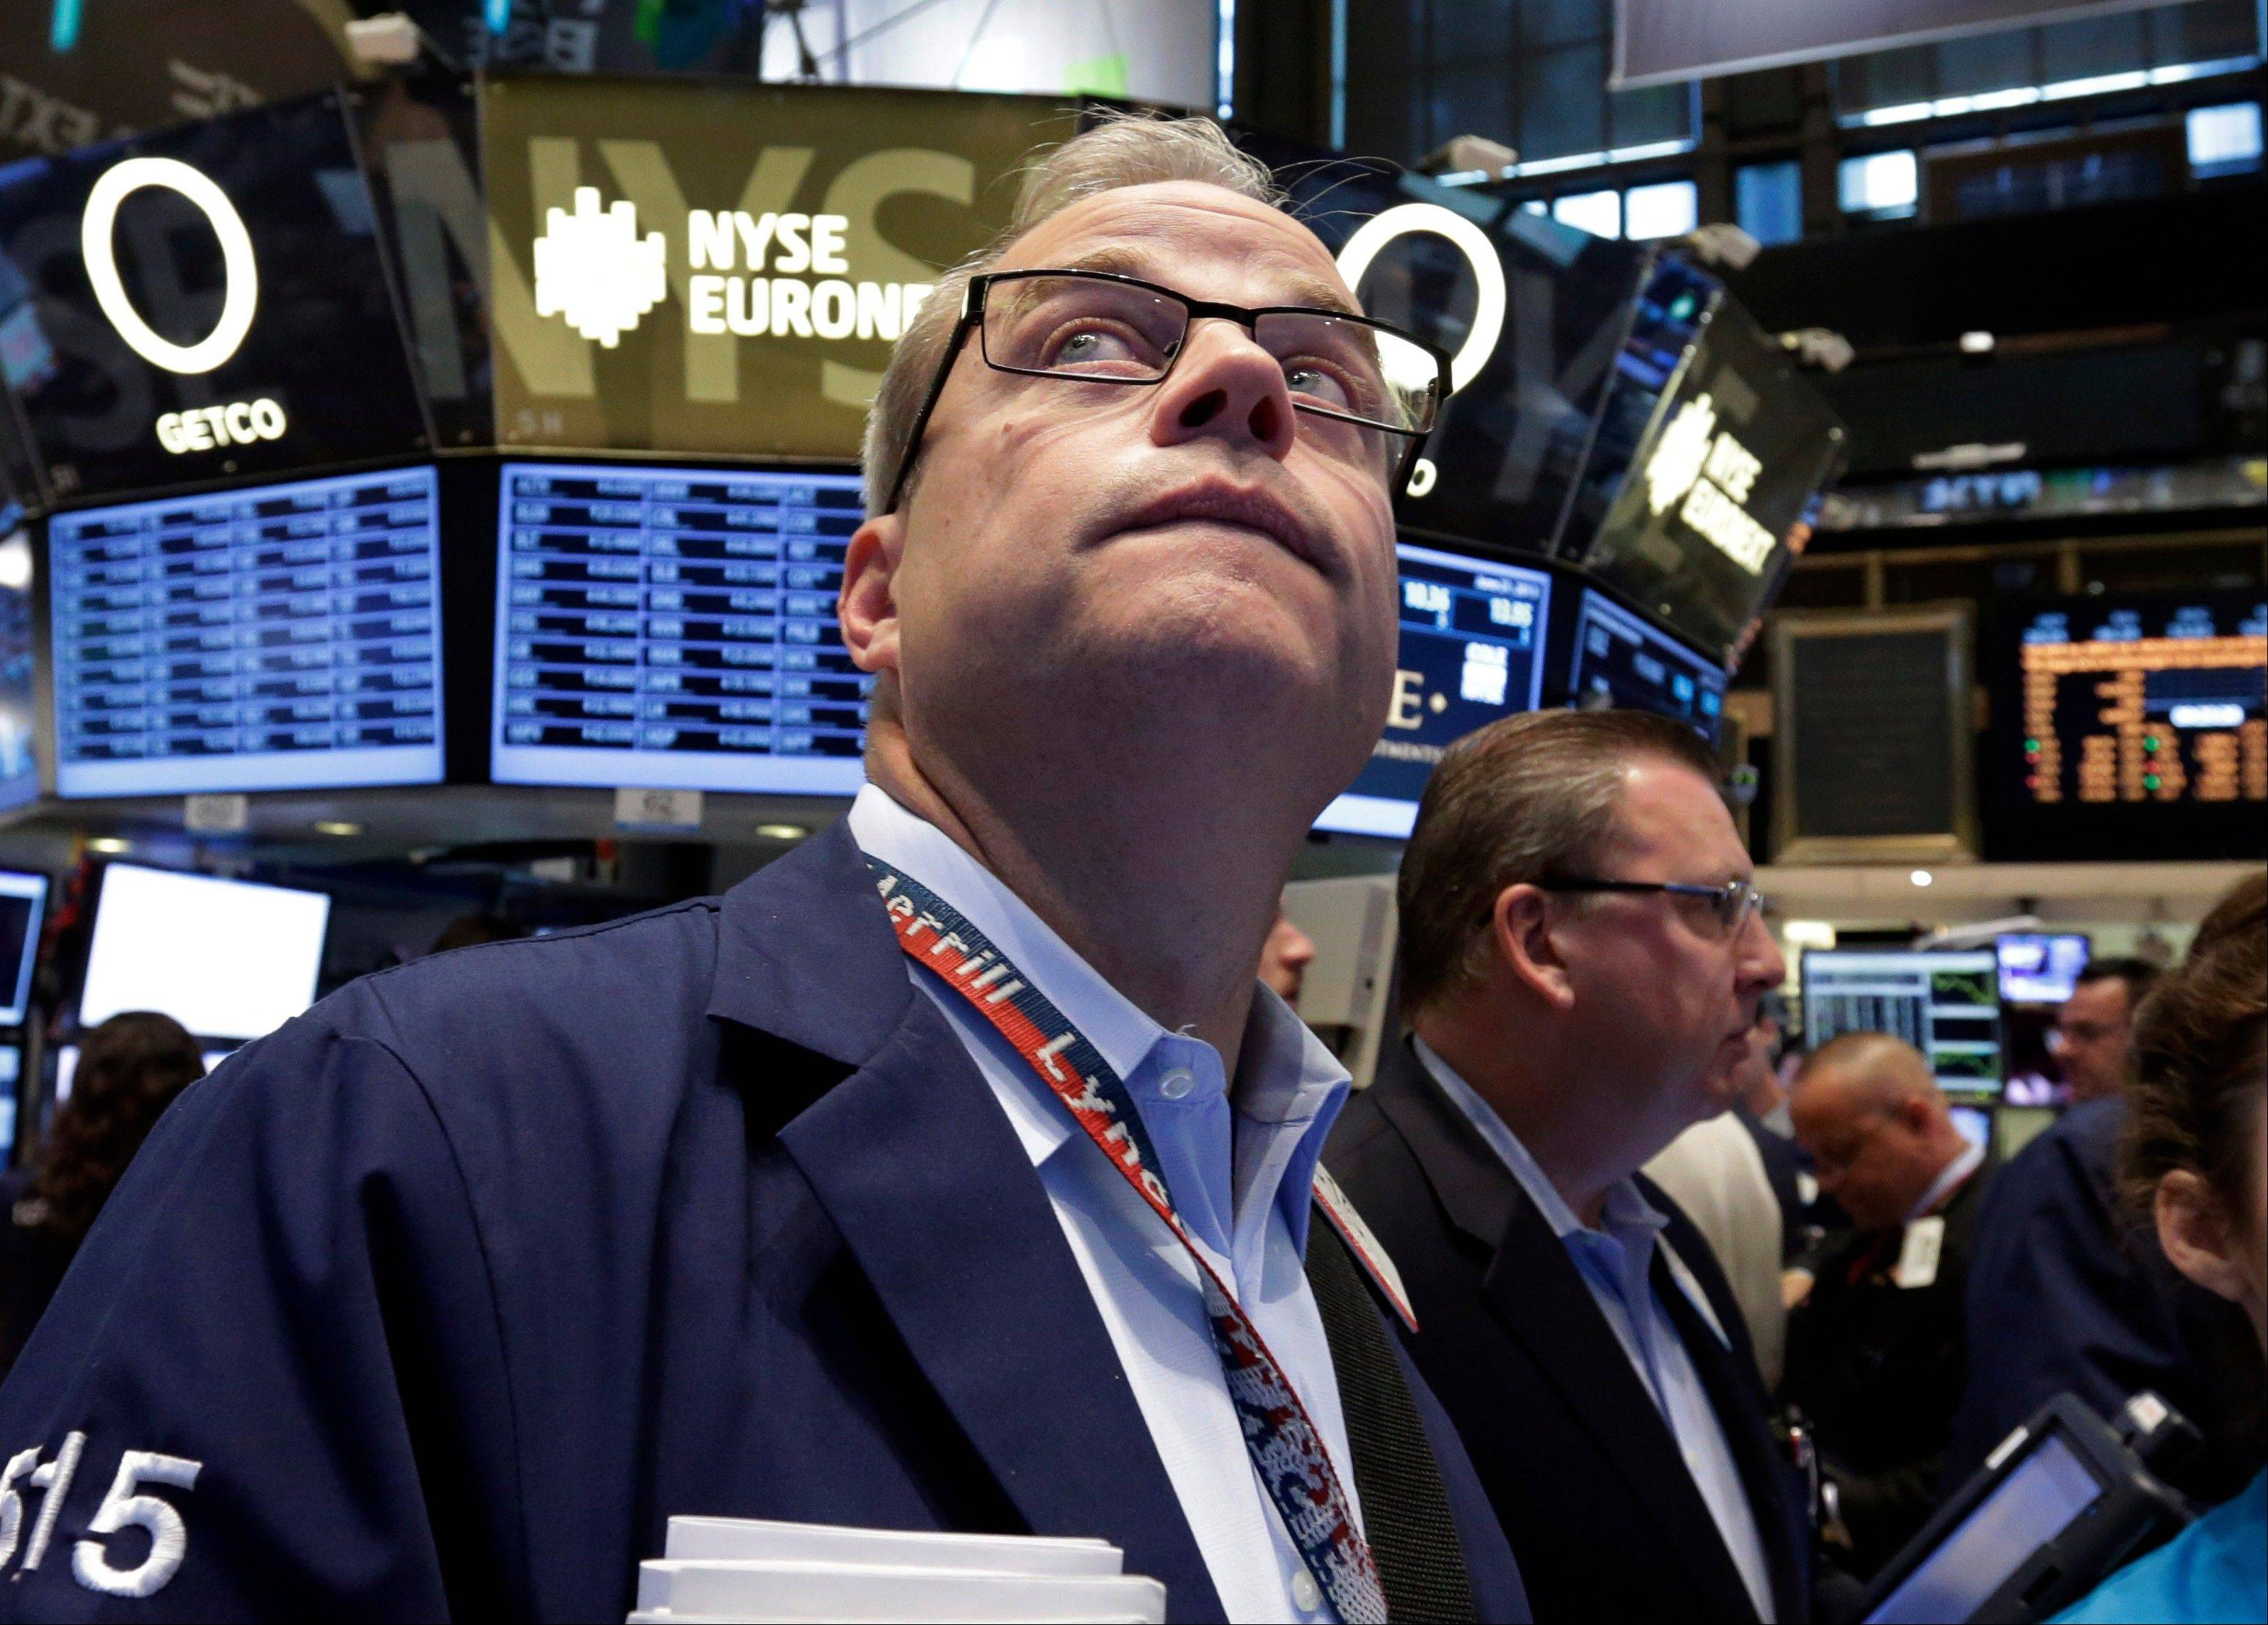 U.S. stocks fell Monday, sending the Standard & Poor's 500 Index to a nine-week low, after Chinese equities entered a bear market amid concern a cash crunch will hurt growth and as investors weighed the impact of a possible reduction in the Federal Reserve's monetary stimulus.